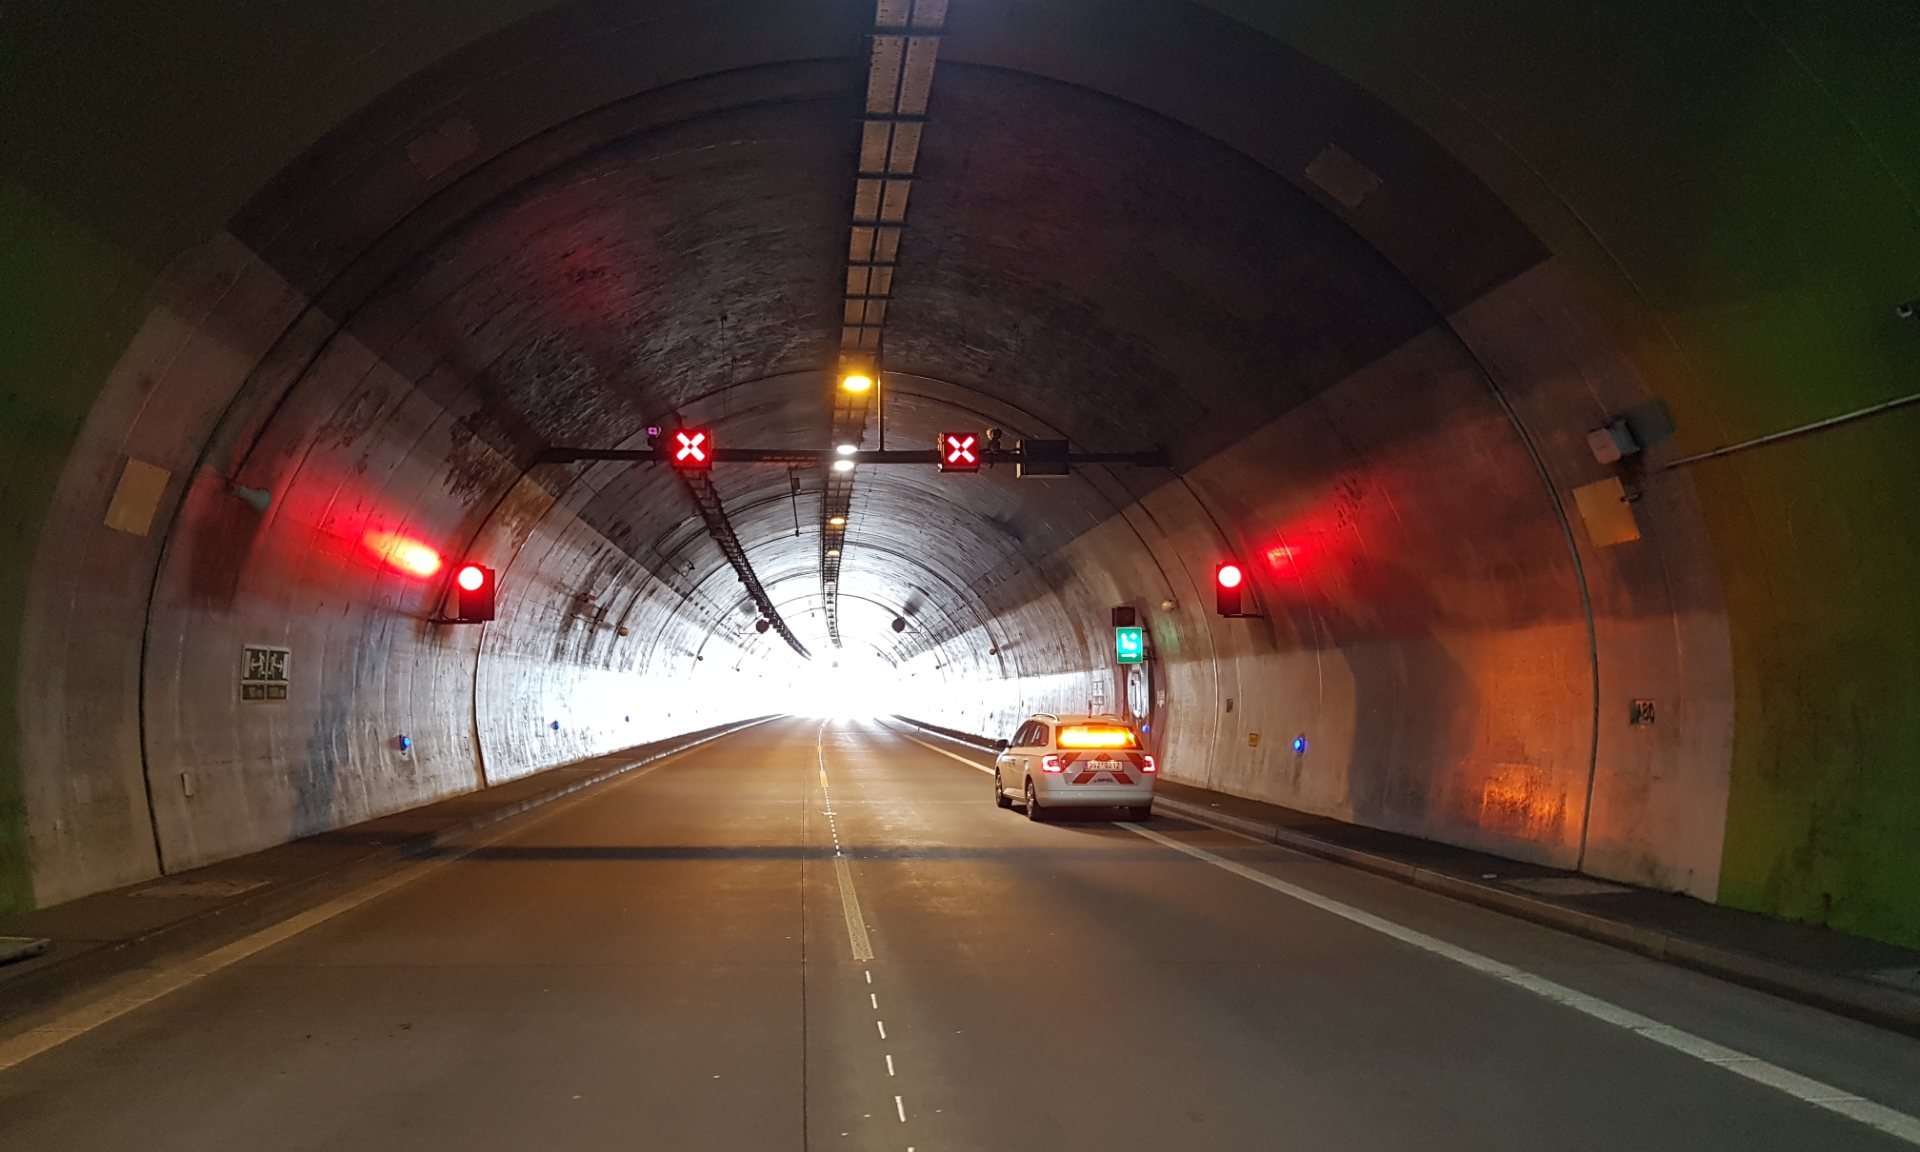 Dutch Company Siqura installs state-of-the-art camera technology in Czech motorway tunnels